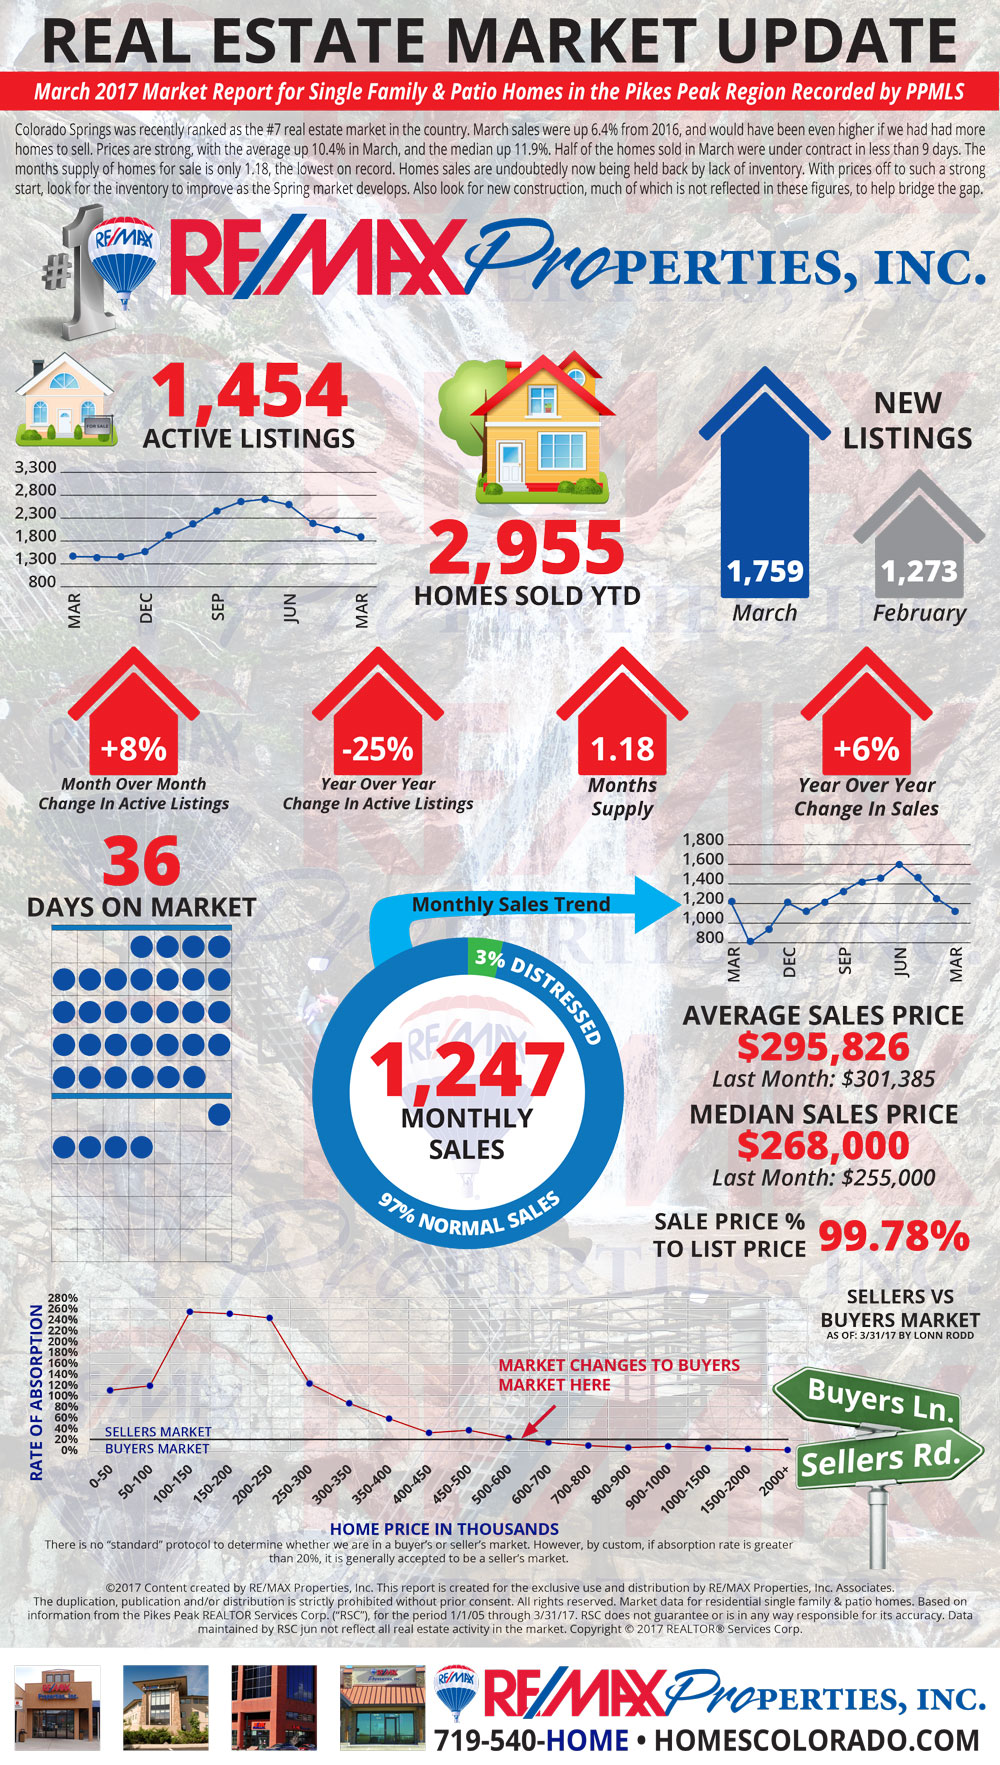 March 2017 Market Update - Colorado Springs Real Estate